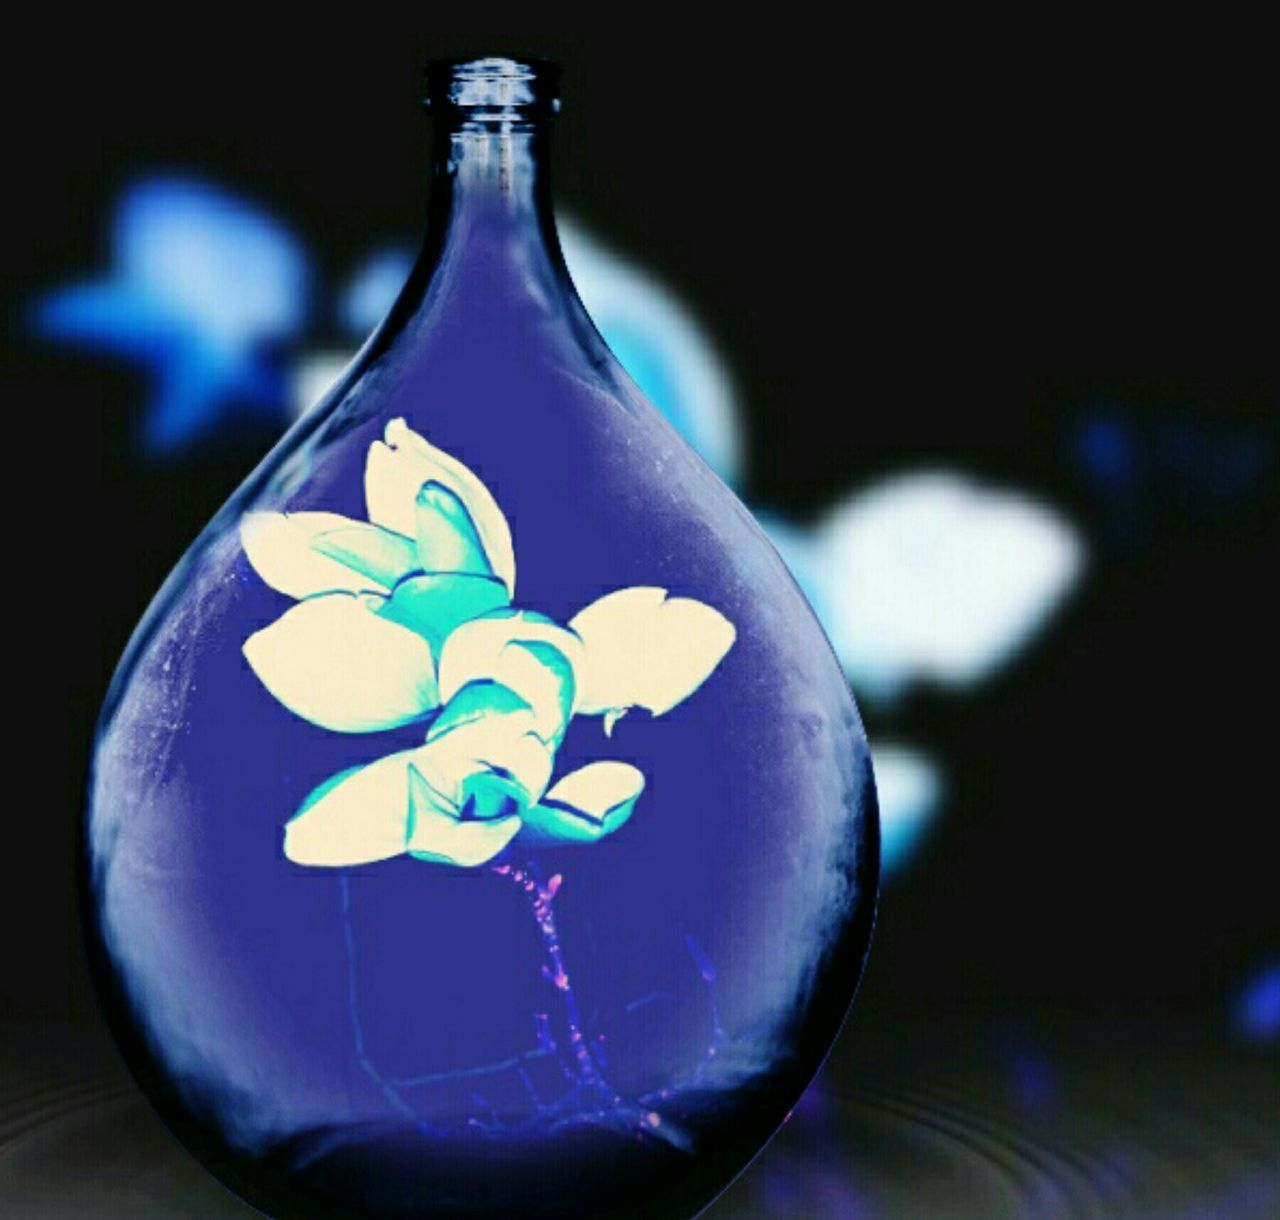 EyeEm Flower Vase WallpaperForMobile Purple Flowersinabottle Abstracts Glassofwater Screensaver Greetingcards